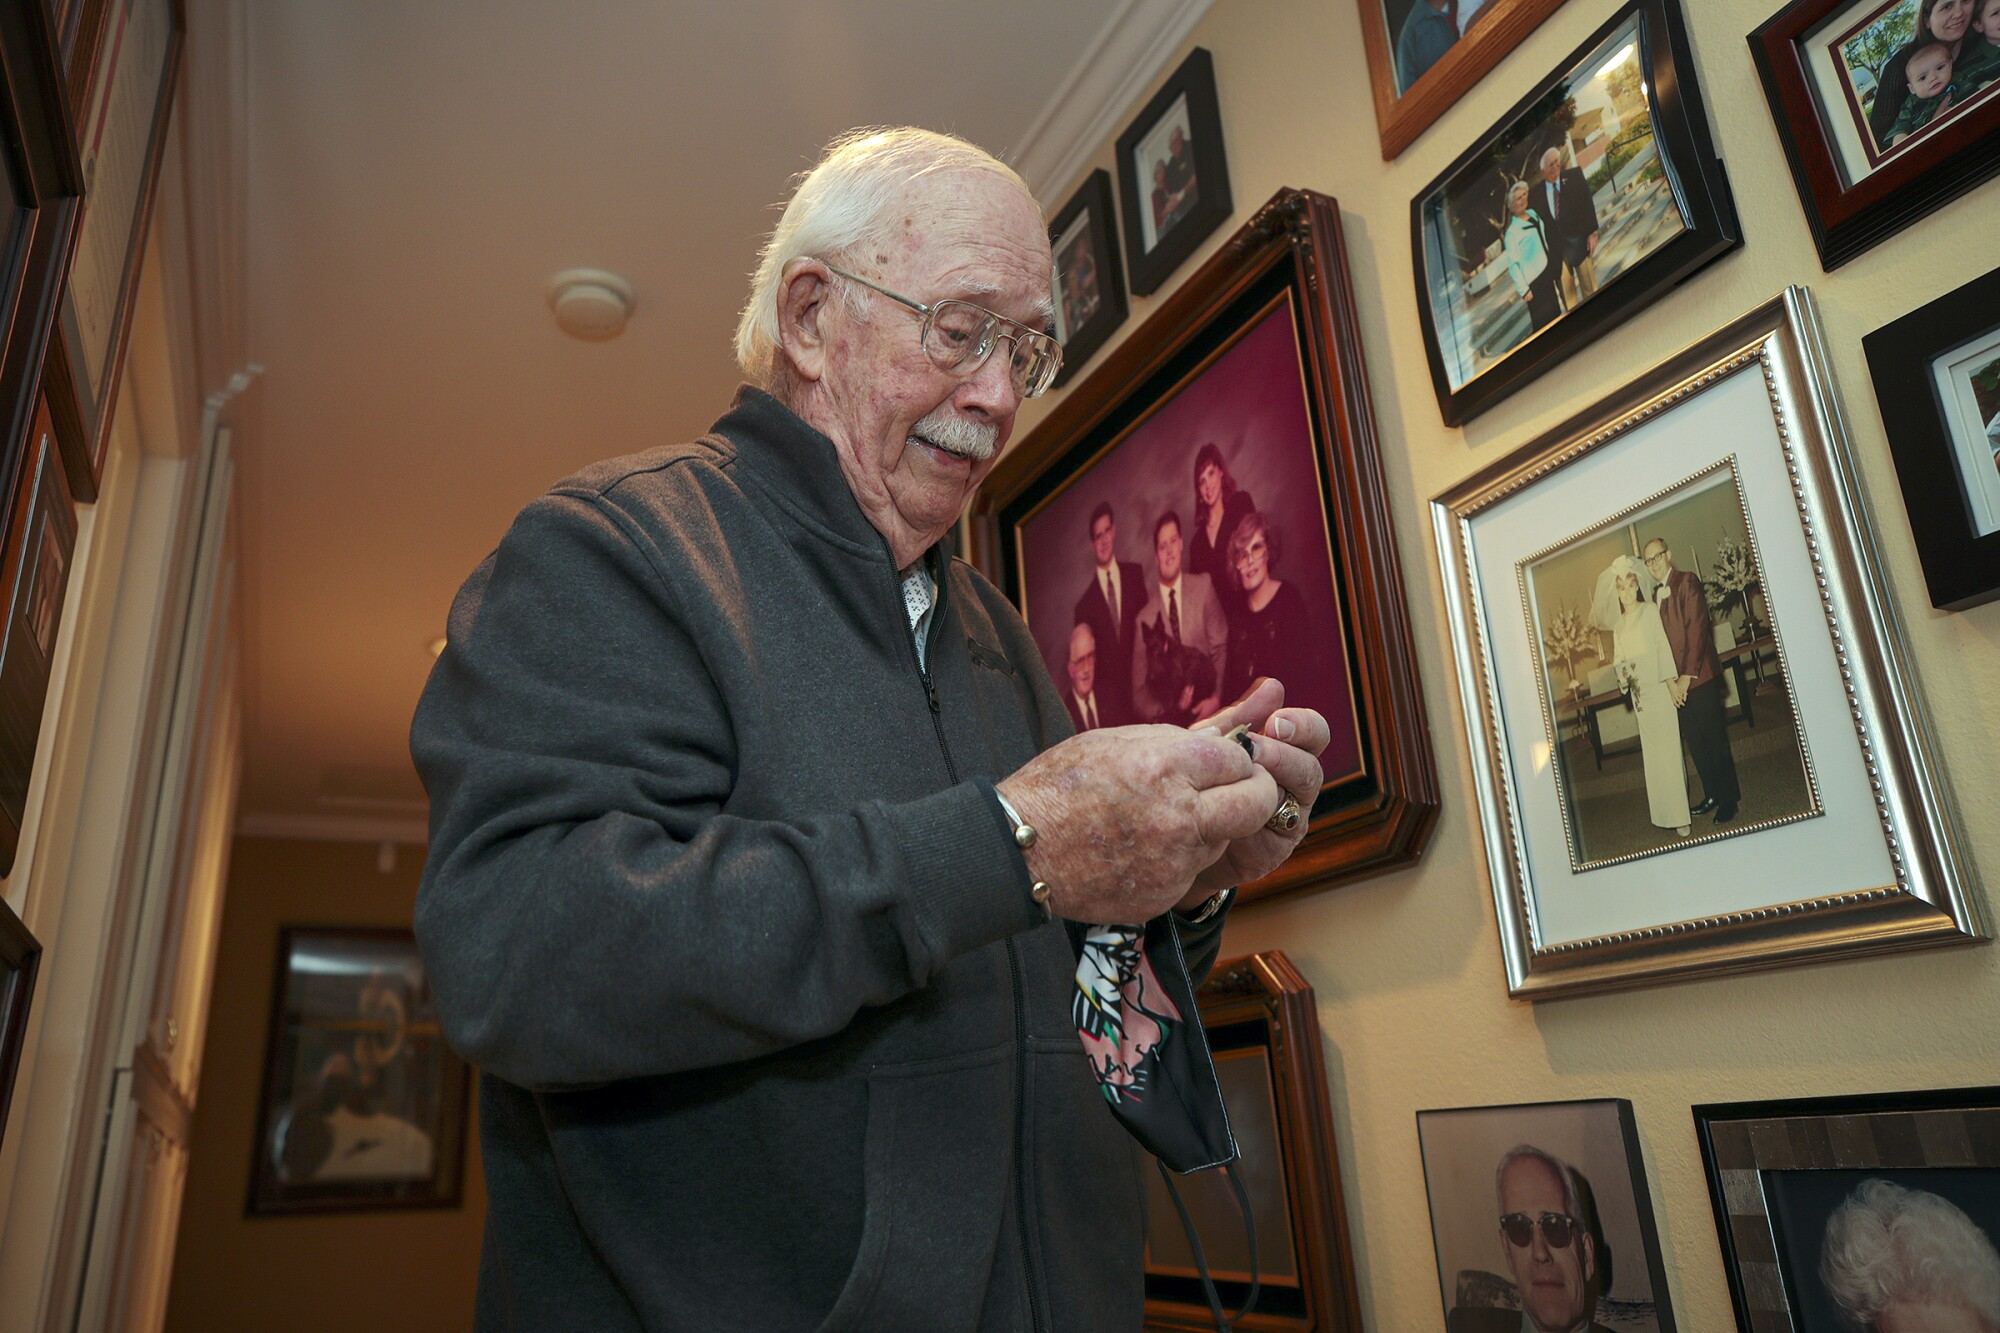 An elderly man looks at a handkerchief in his hands while standing next to a wall of family photos in his home